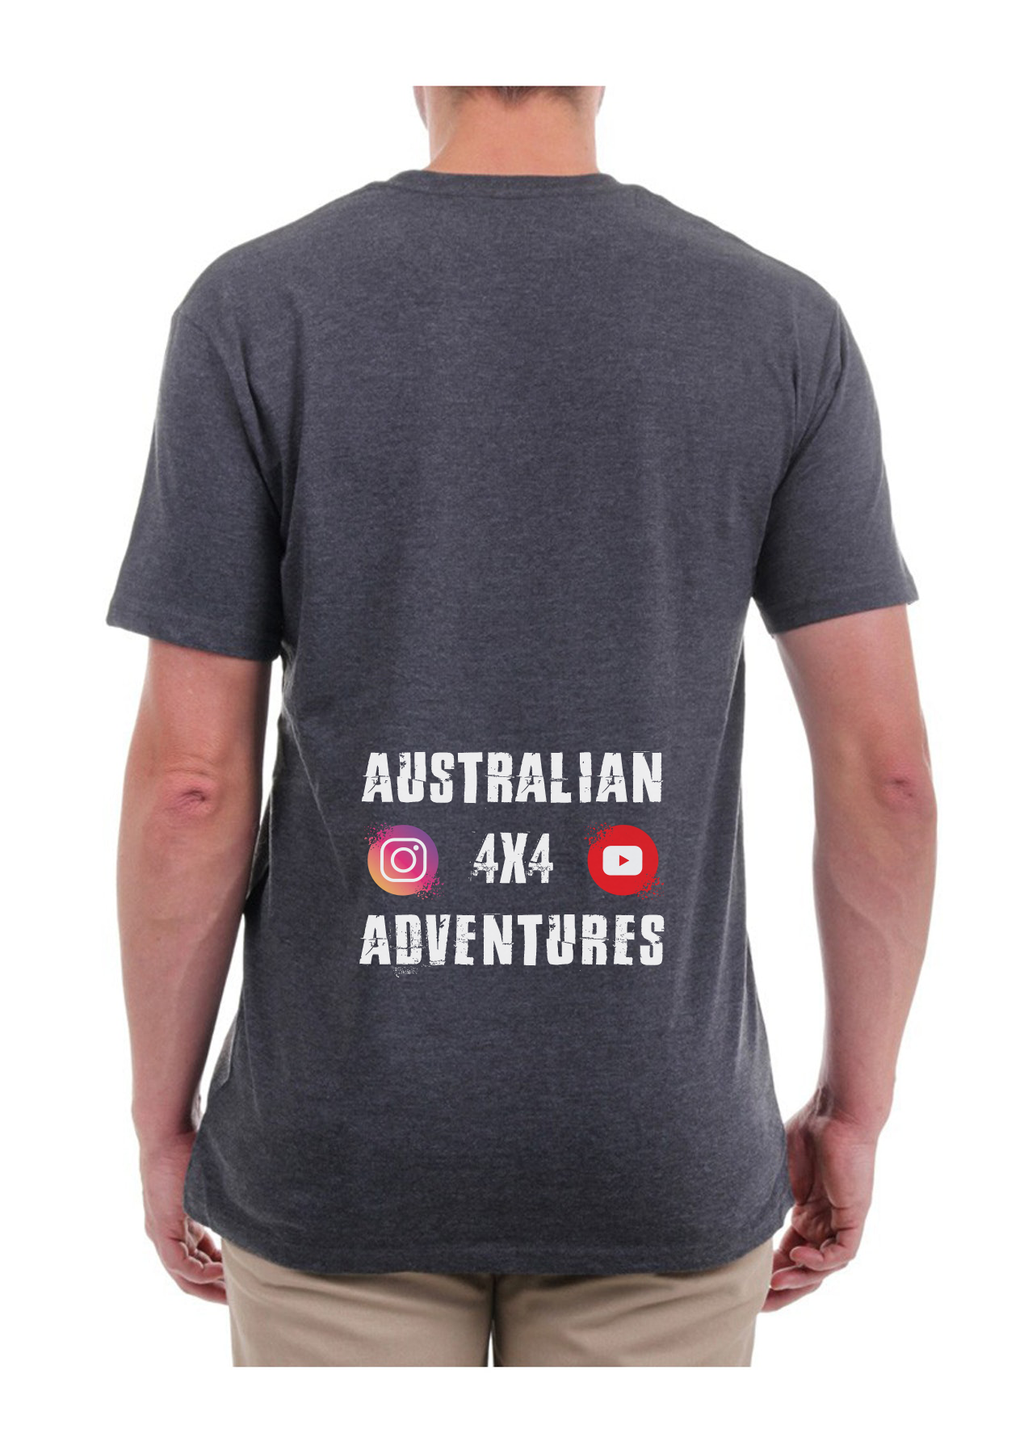 Australian 4x4 Adventures - Tee - Charcoal - Dirty As Clothing